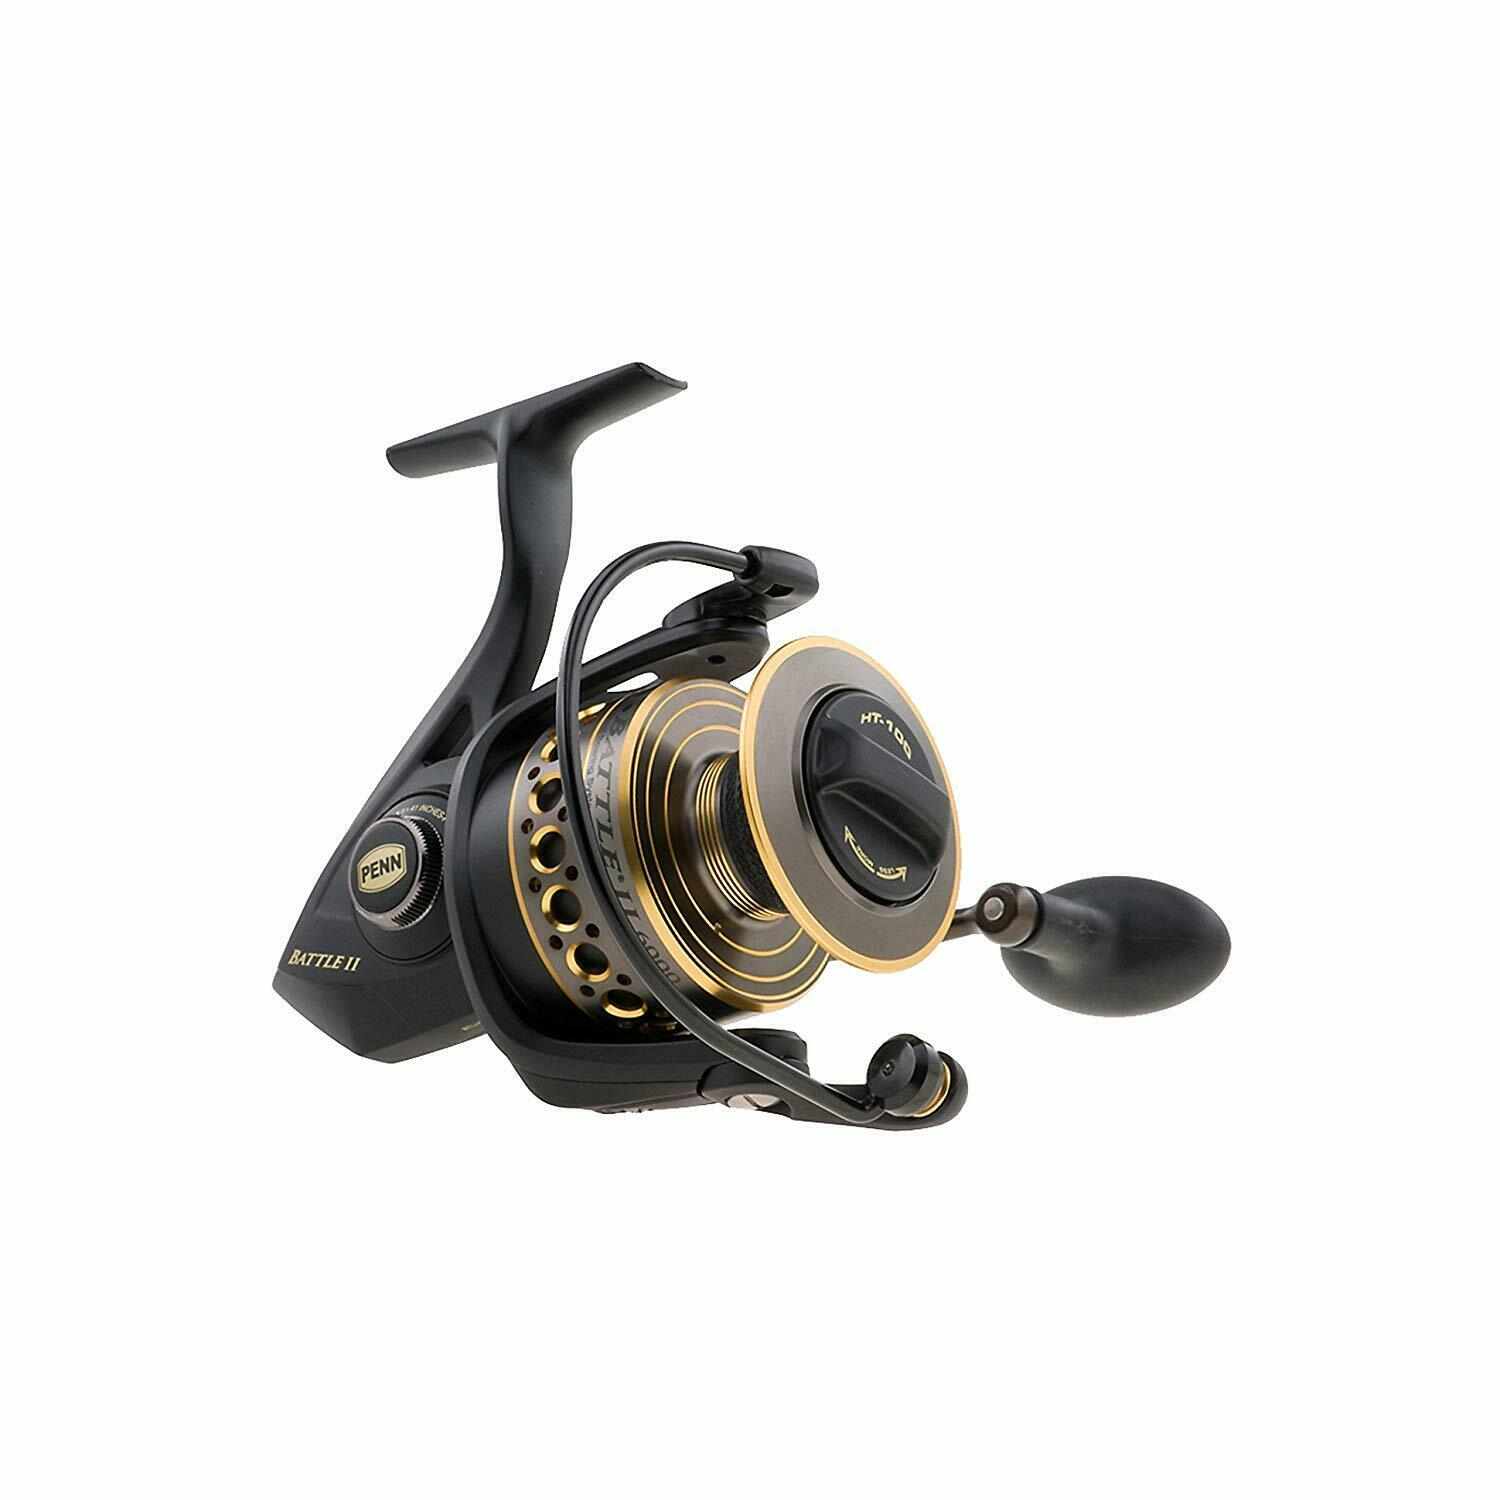 Penn Spinning Reel BTLII8000 Battle II Tracre number nuovo